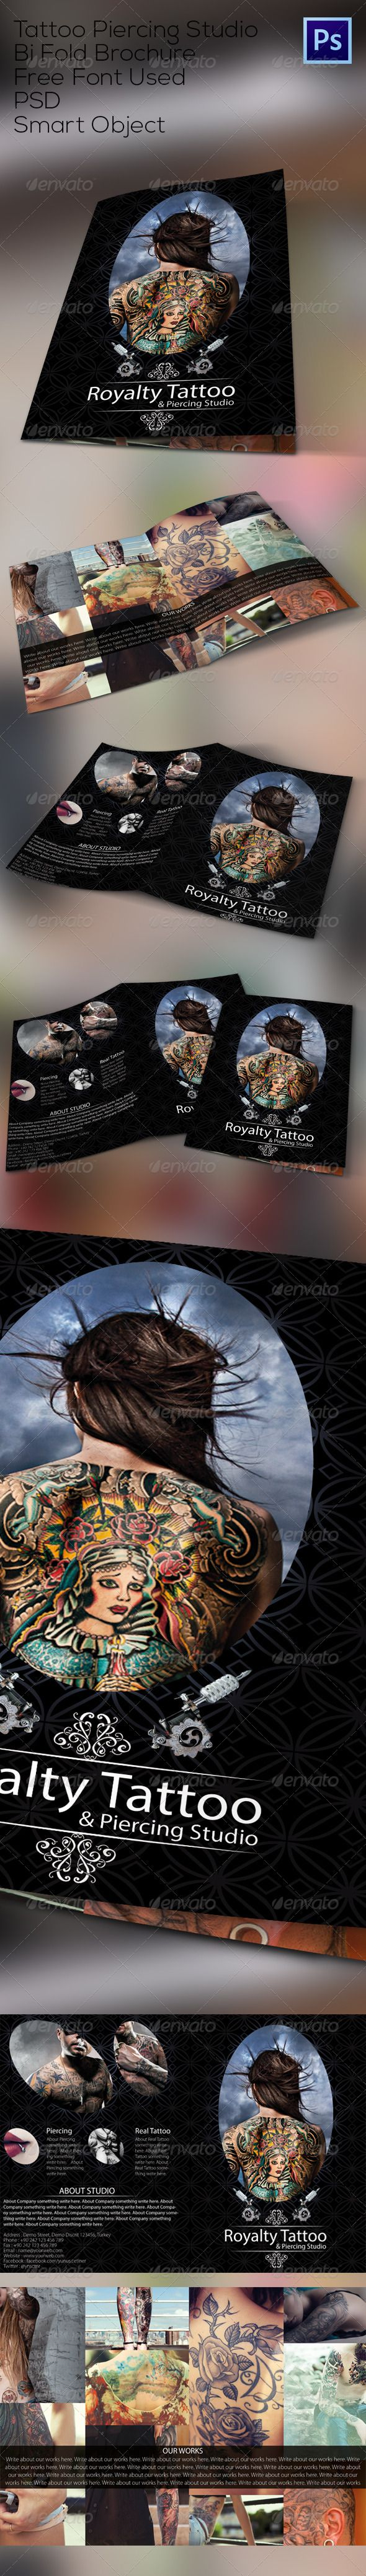 Tattoo Studio Bi Fold Brochure